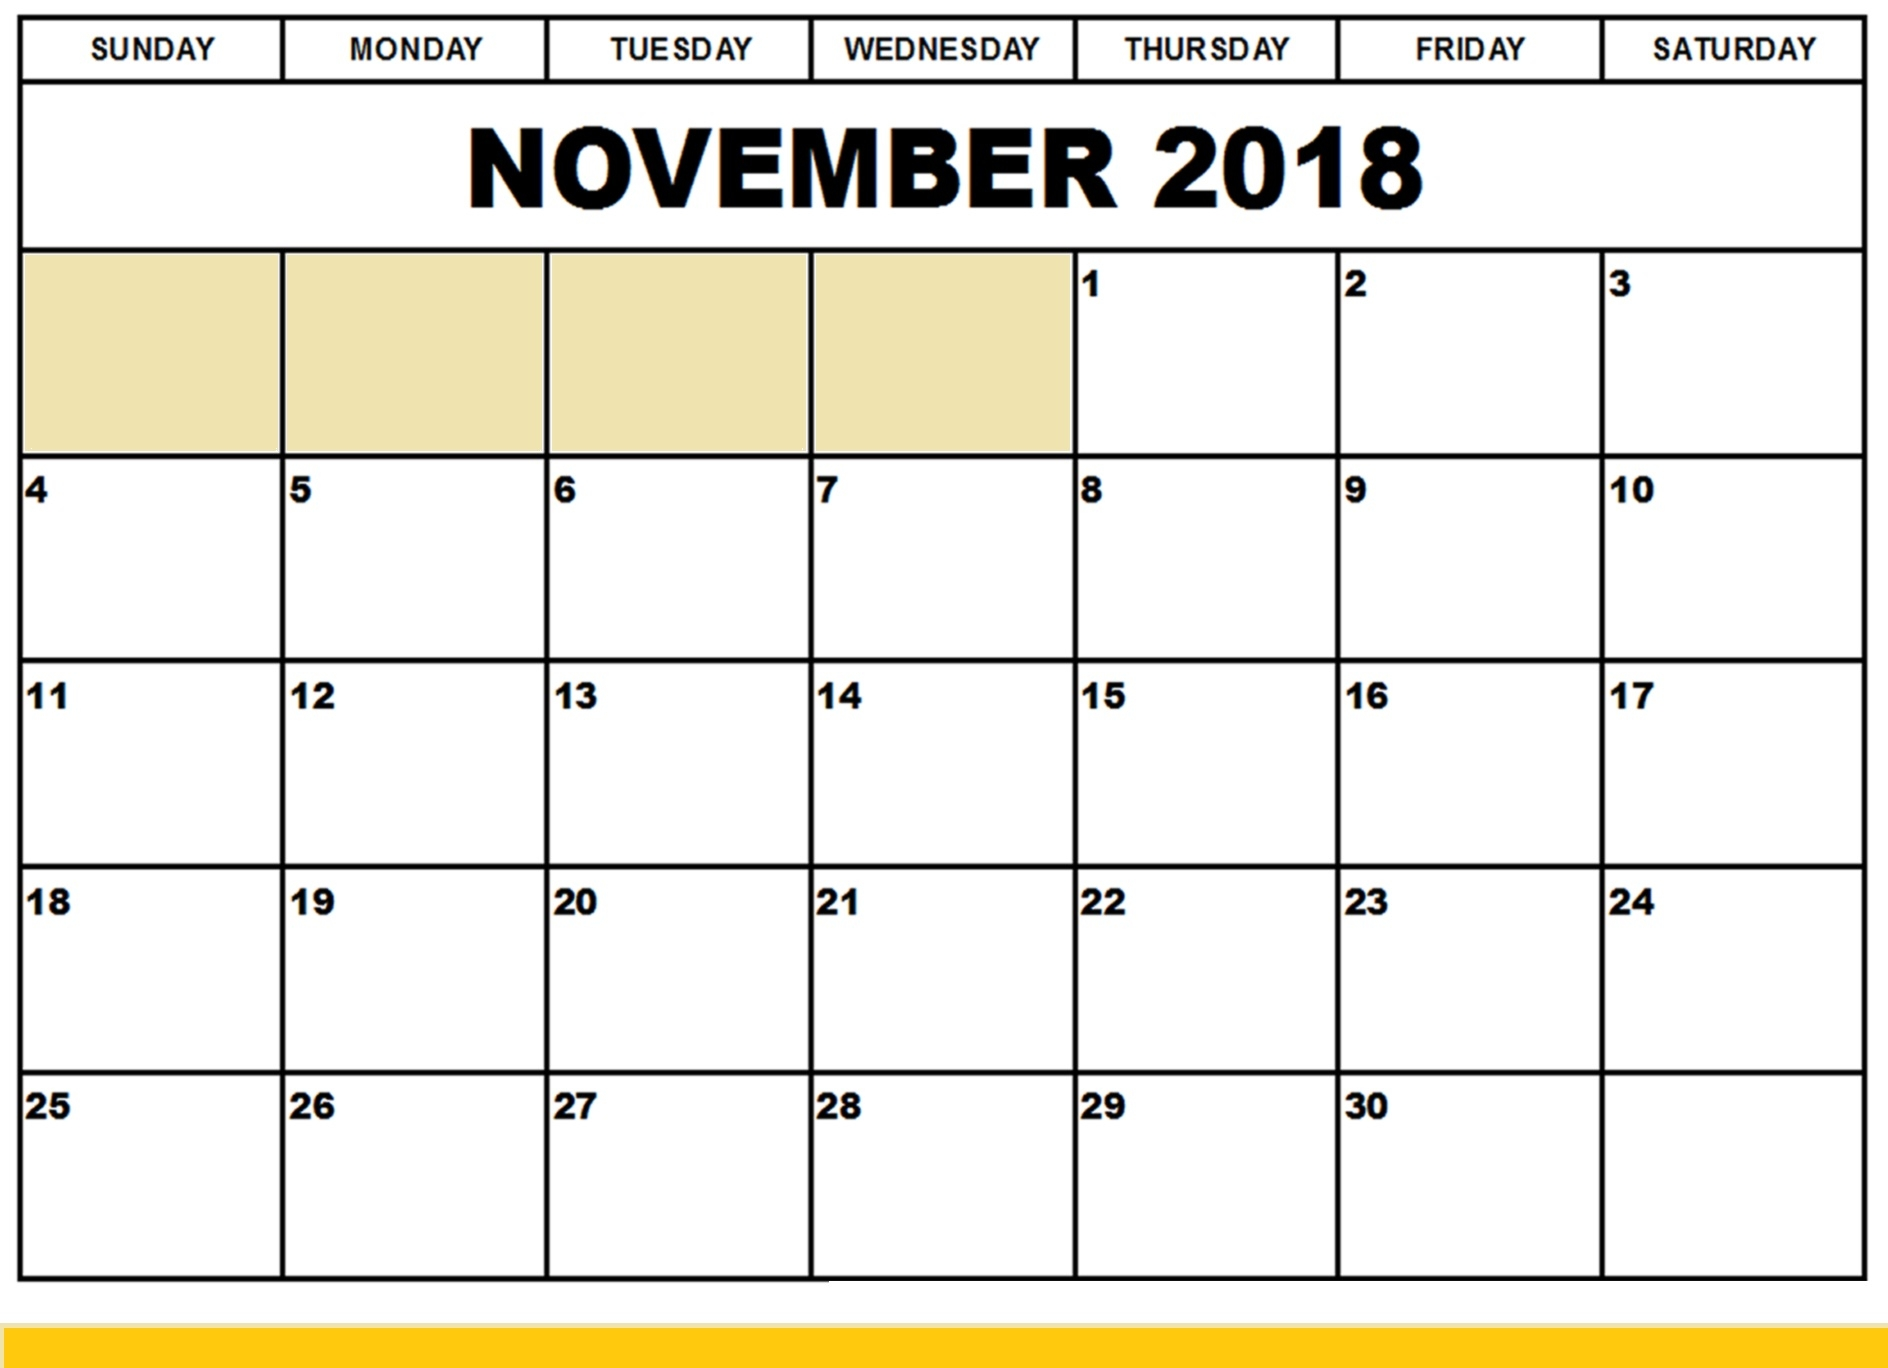 download free printable sample of november 2018 editable calendar Editable November 2018 Calendar erdferdf